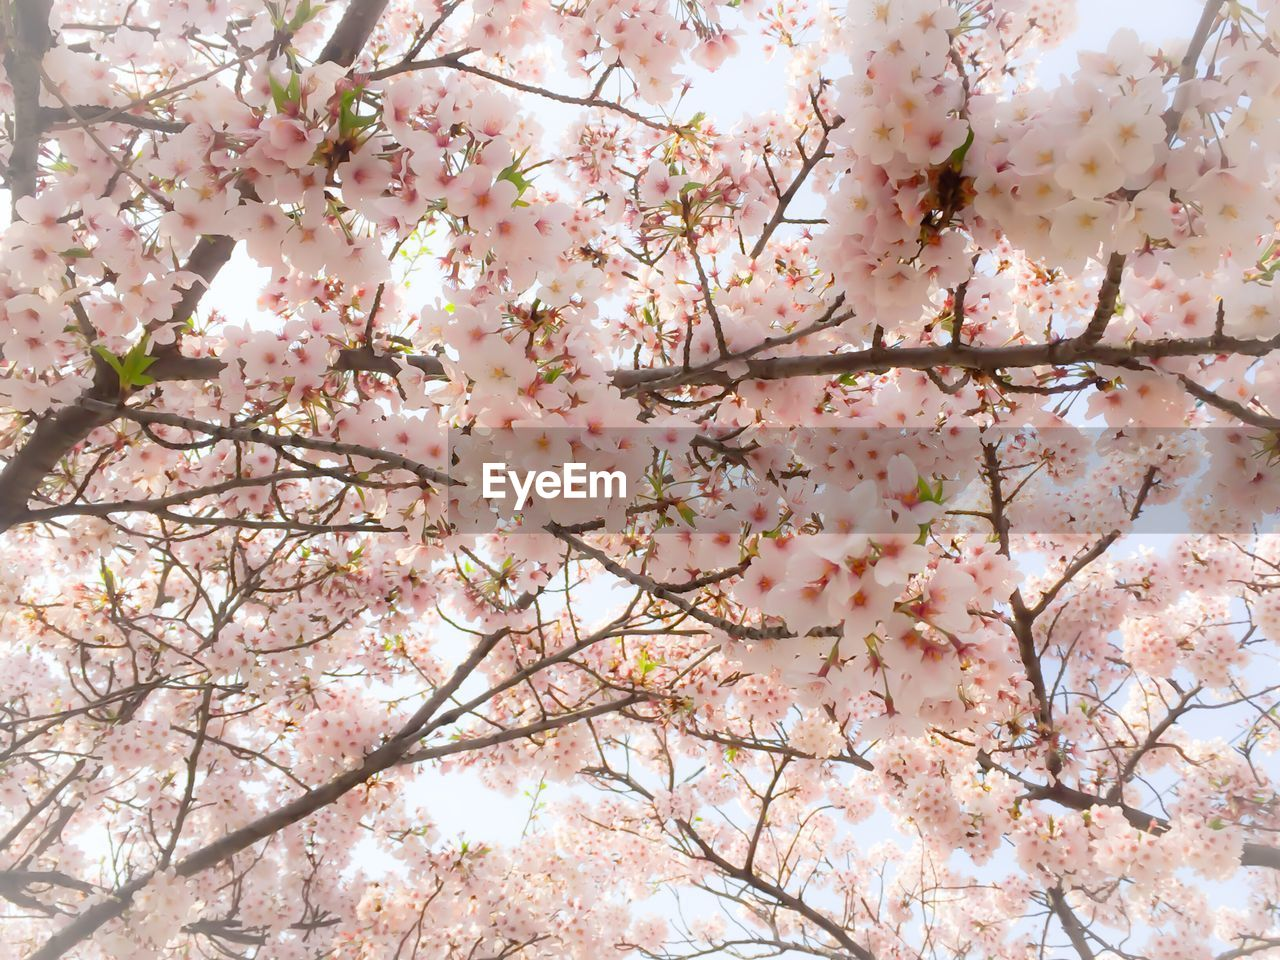 flower, blossom, tree, branch, cherry blossom, beauty in nature, fragility, springtime, freshness, cherry tree, nature, growth, pink color, botany, apple blossom, almond tree, no people, low angle view, orchard, day, twig, backgrounds, magnolia, white color, outdoors, full frame, petal, close-up, plum blossom, flower head, sky